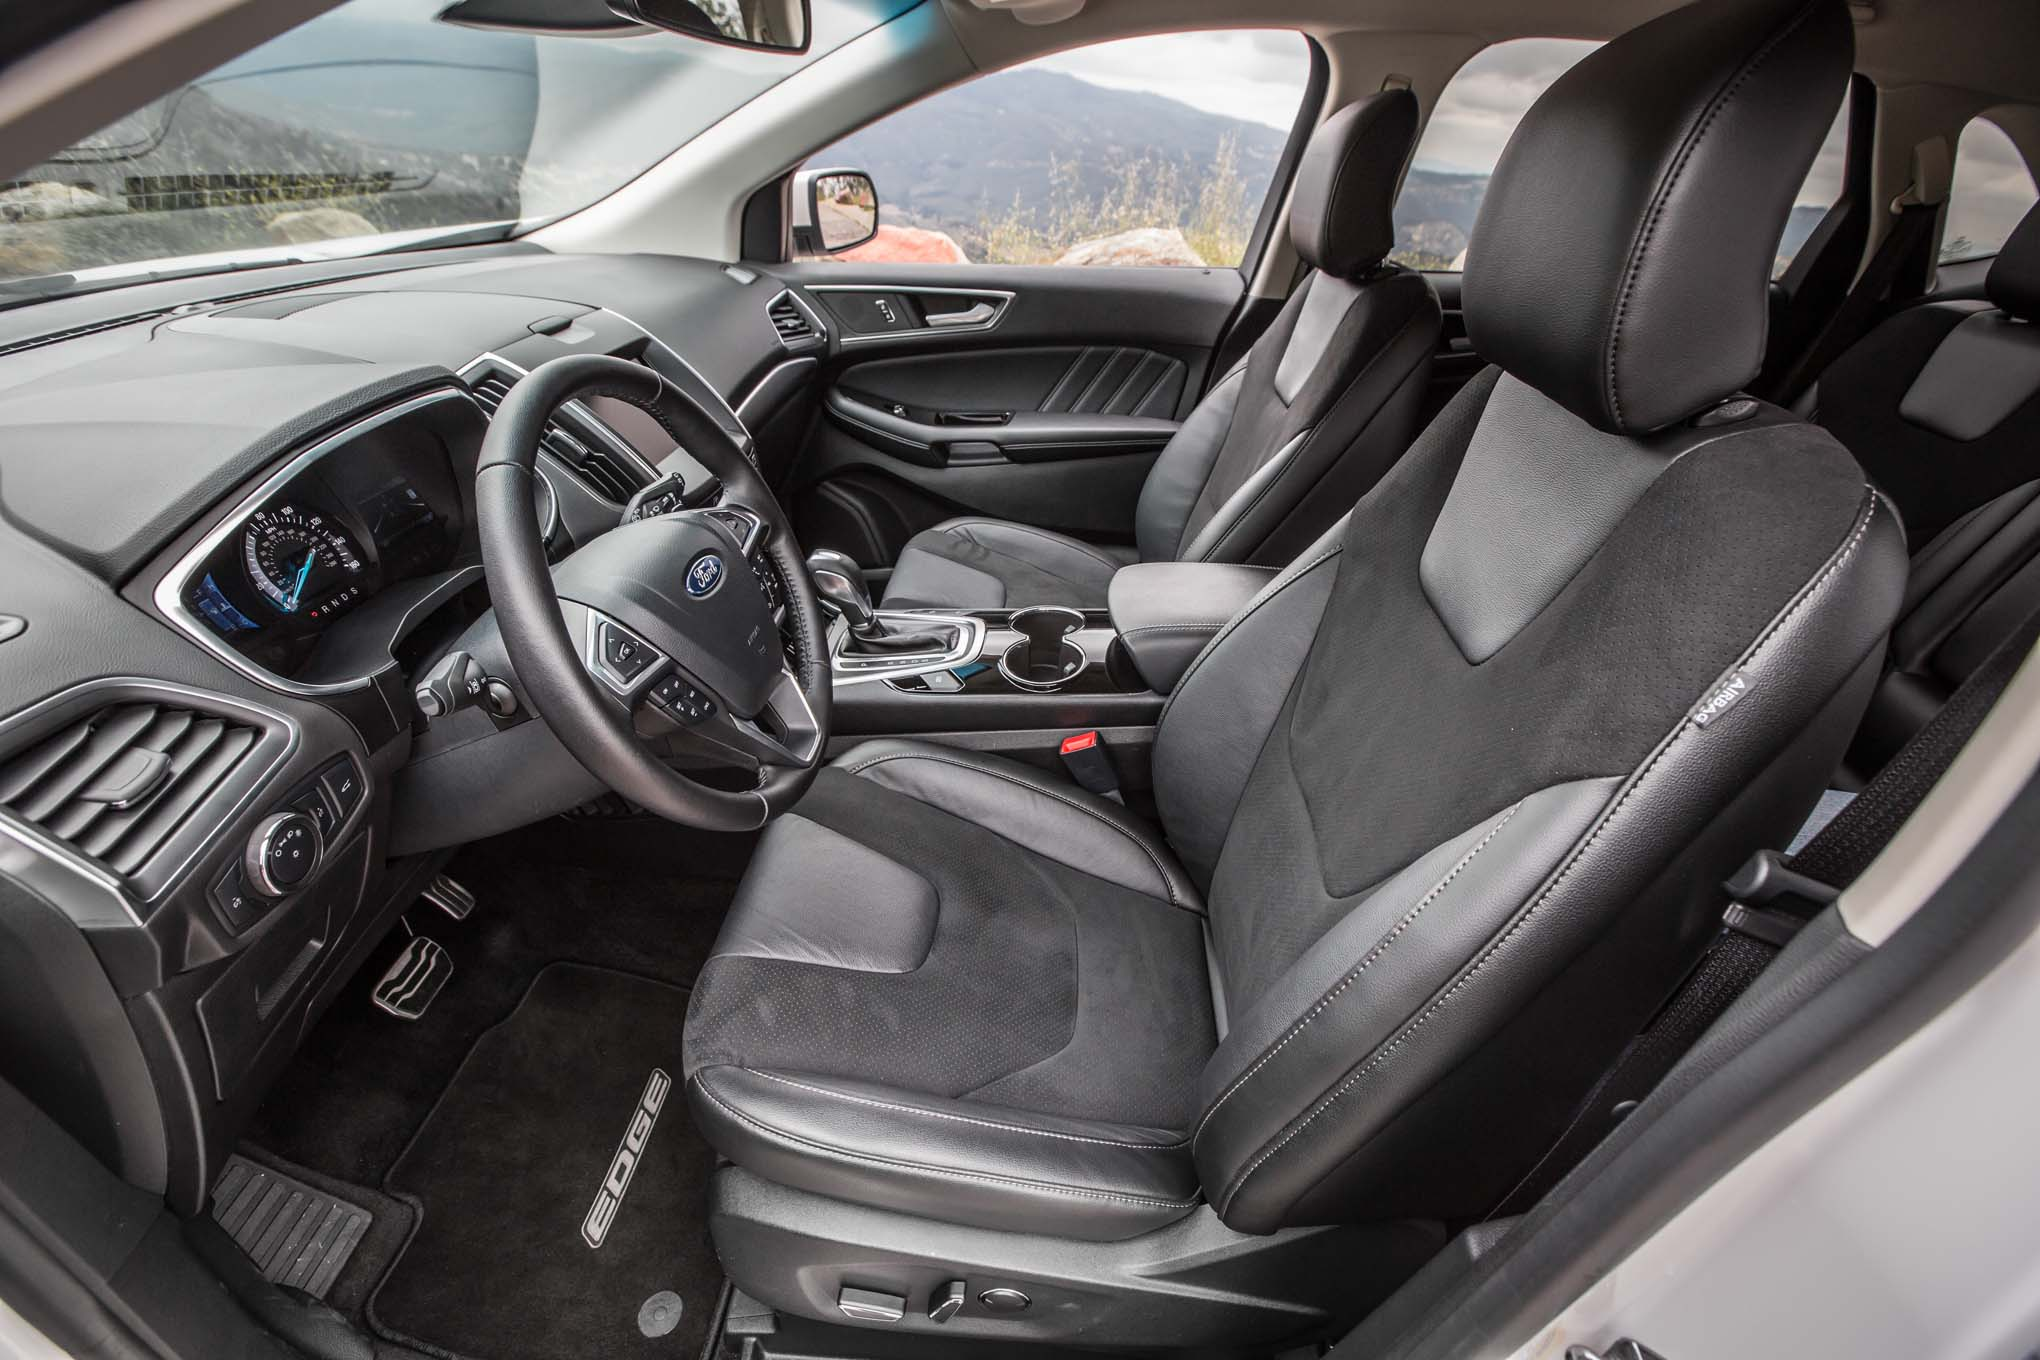 2016 Ford Edge Sport Awd Front Interior Seats Motor Trend En Espanol